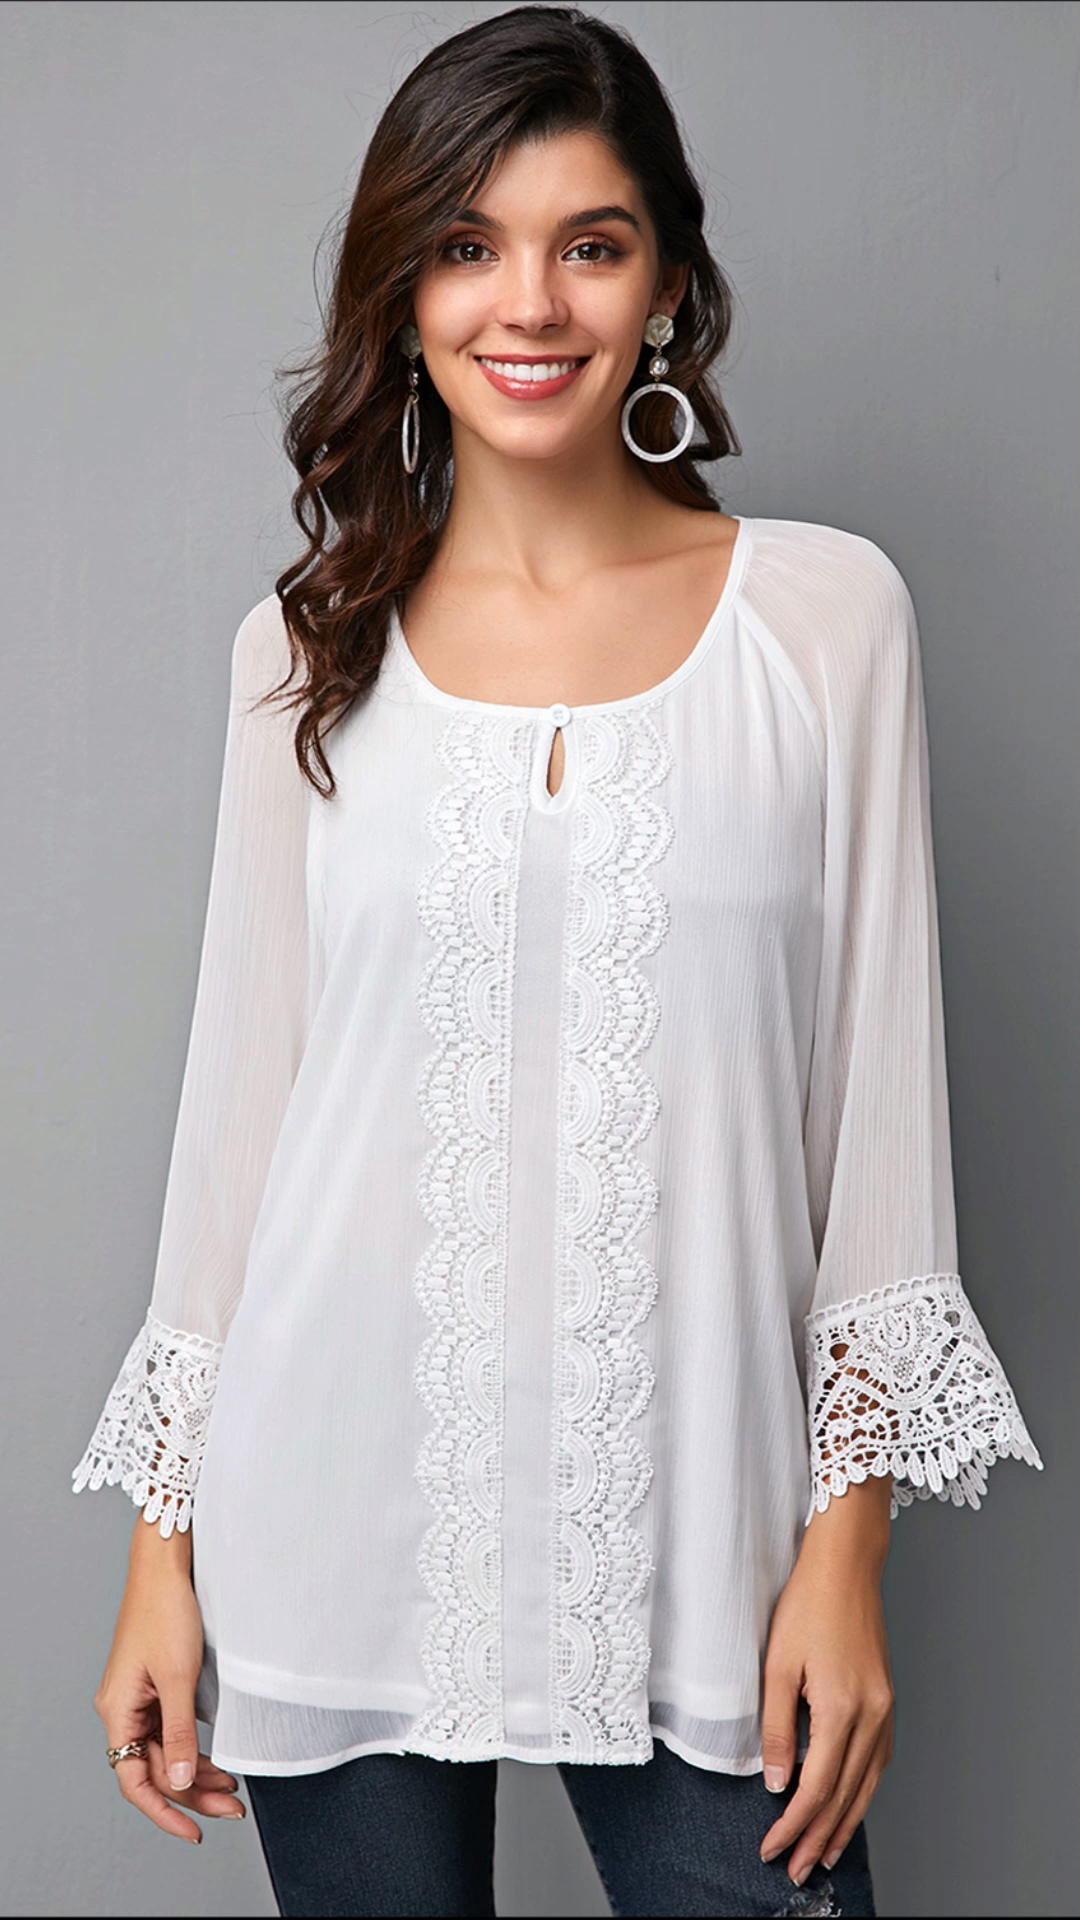 2020 Spring Break Blouse Outfits Under $30